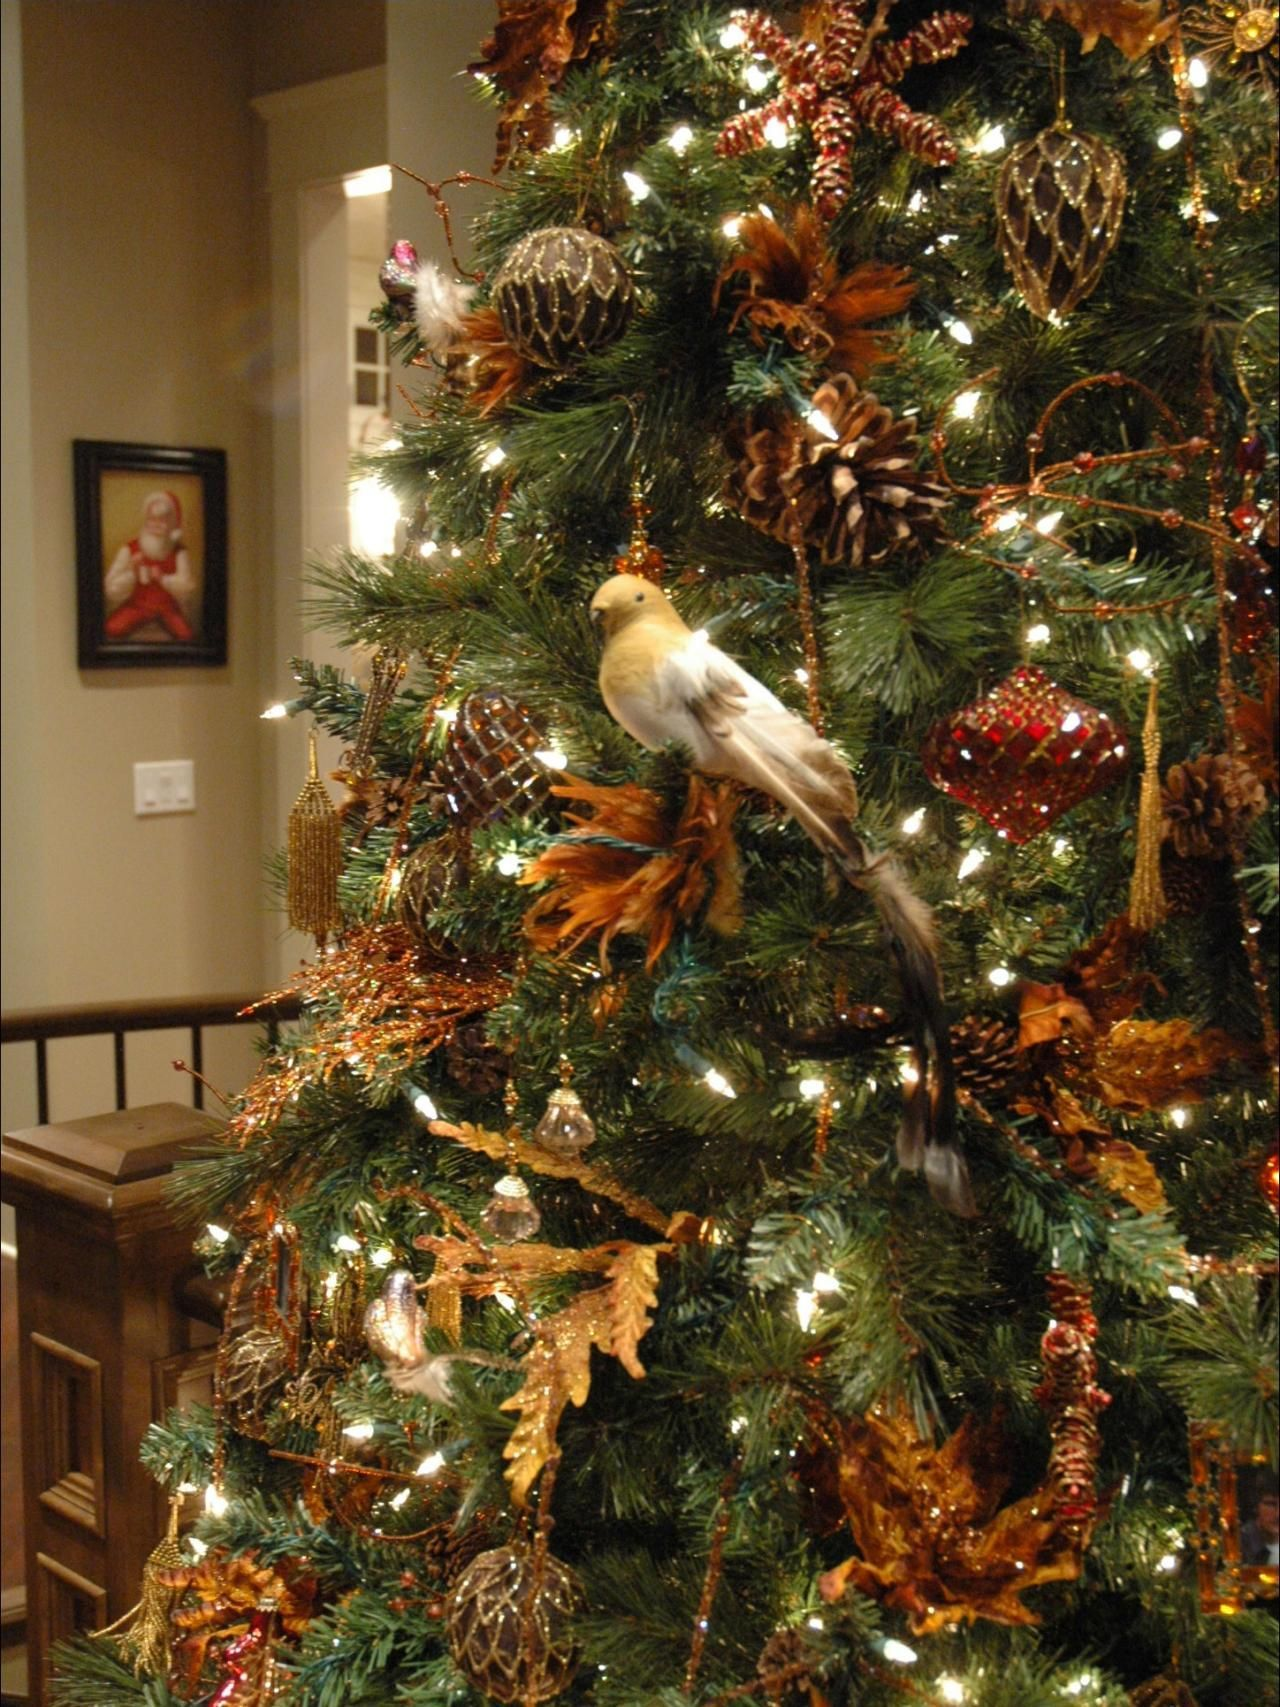 Christmas Tree Decorating Ideas | Interior Design Styles and Color ...